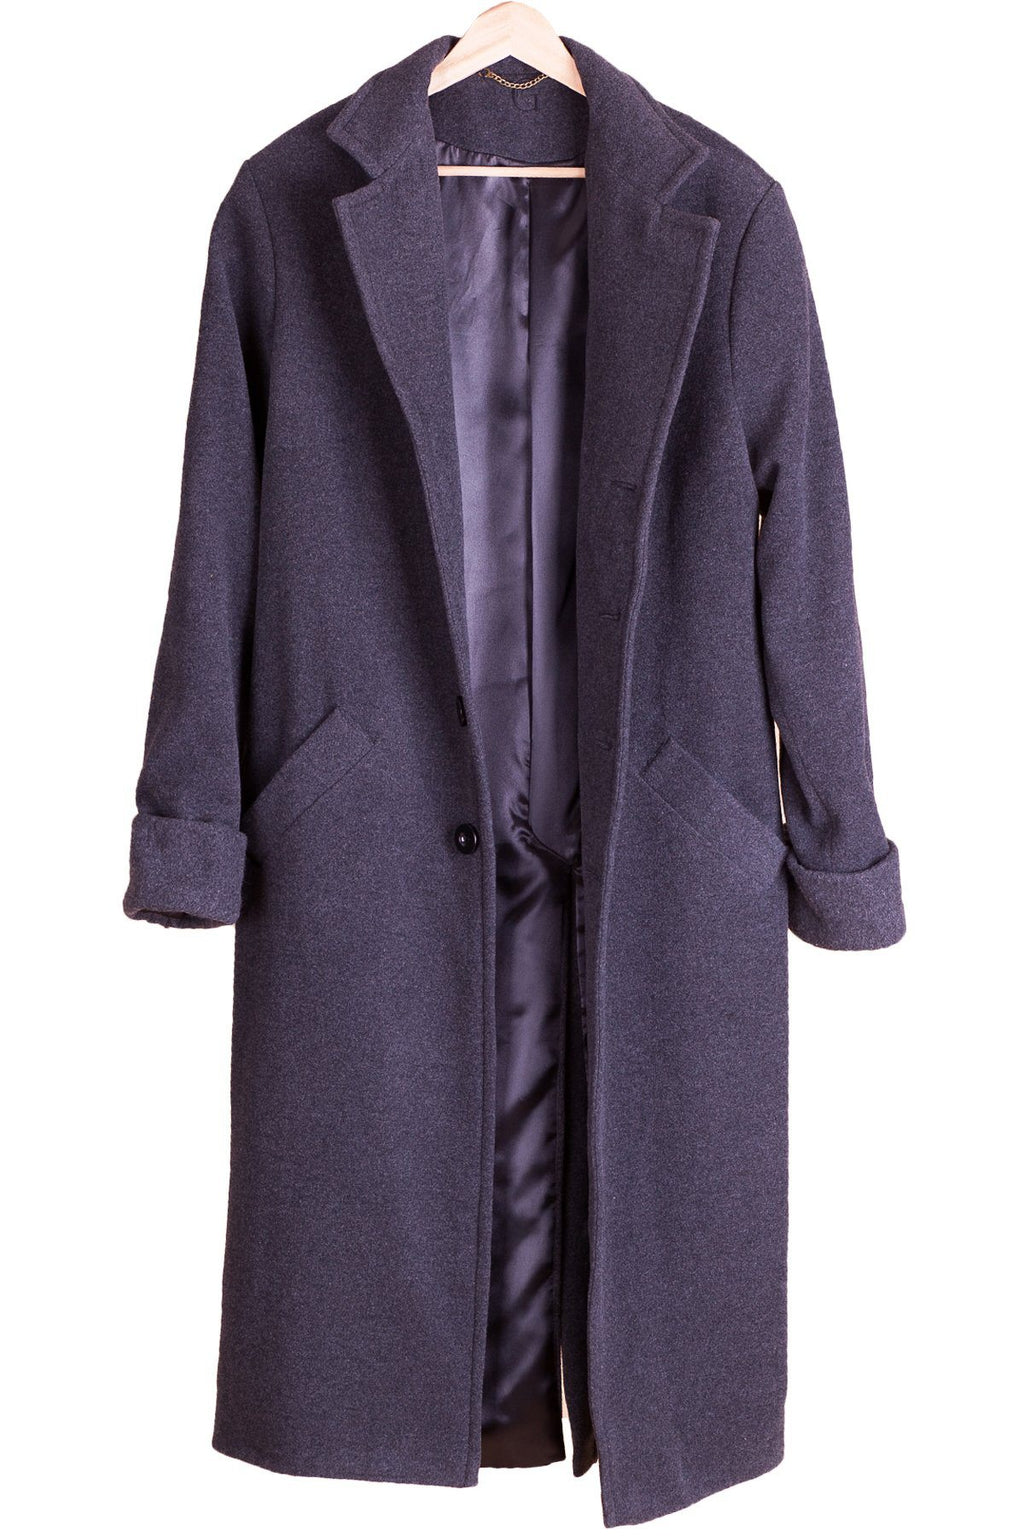 TheG man wool oldschool Overcoat // Dark Gray